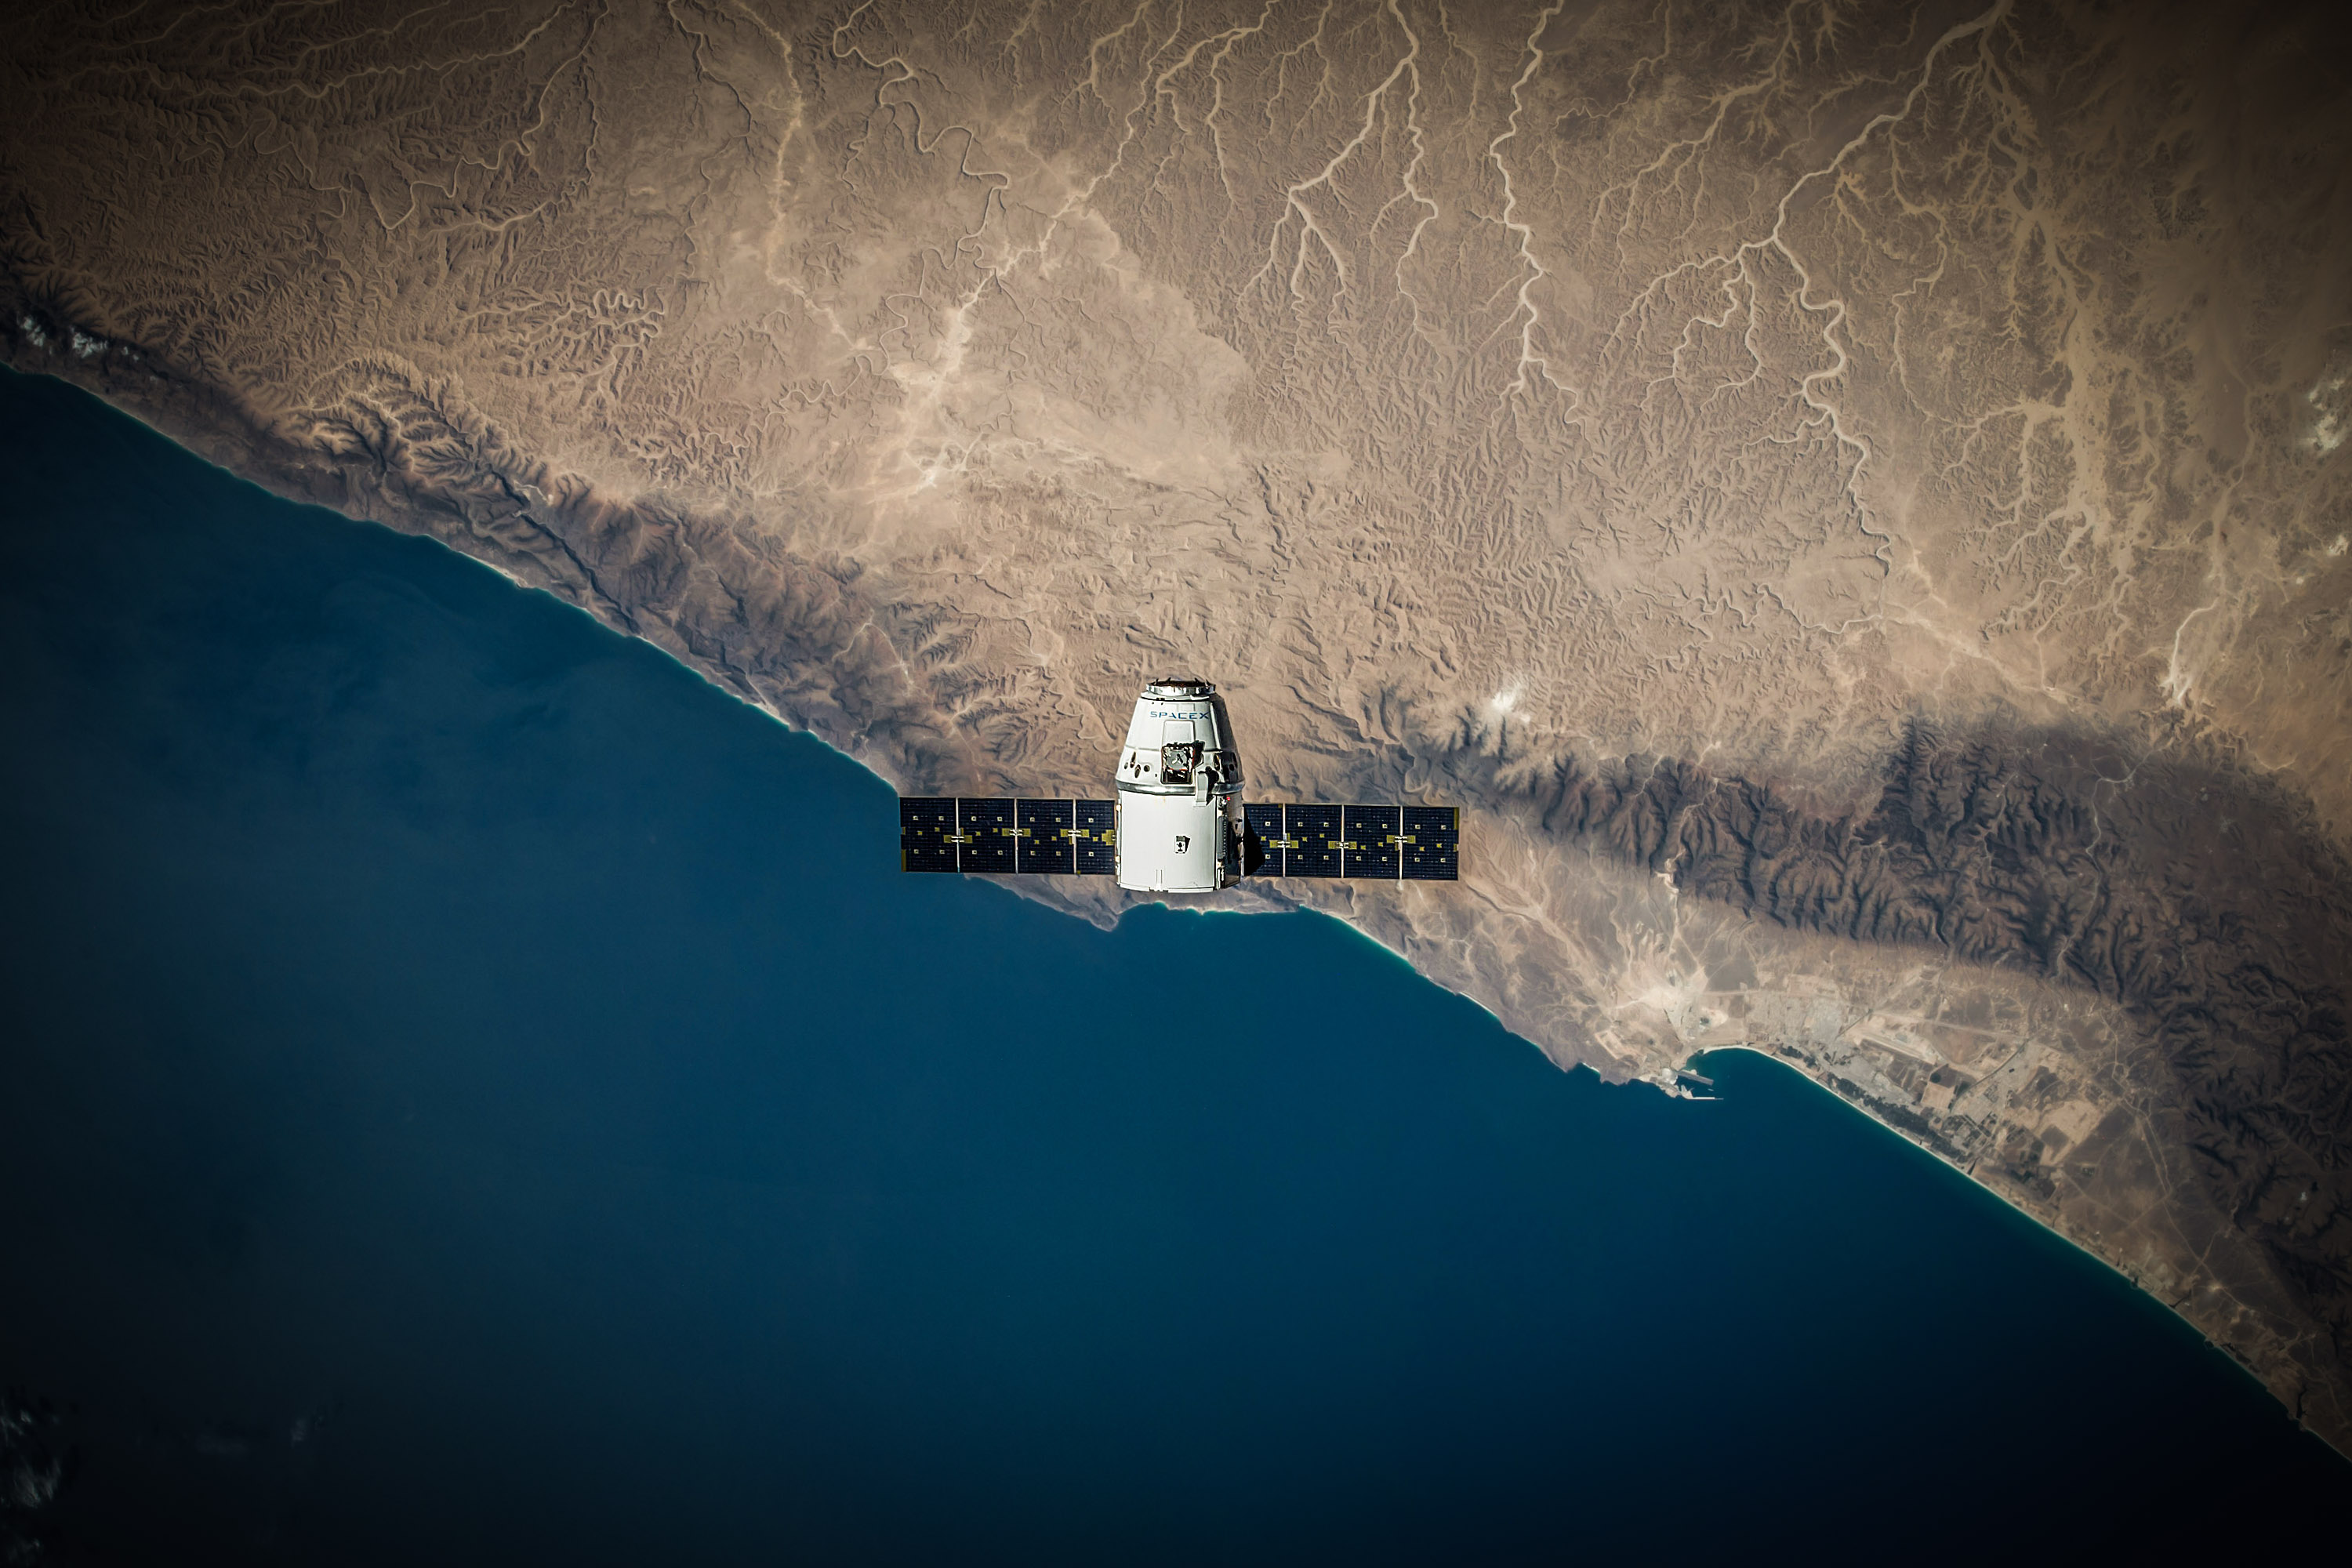 SpaceX Dragon capsule in orbit. Photo by SpaceX released to public domain.